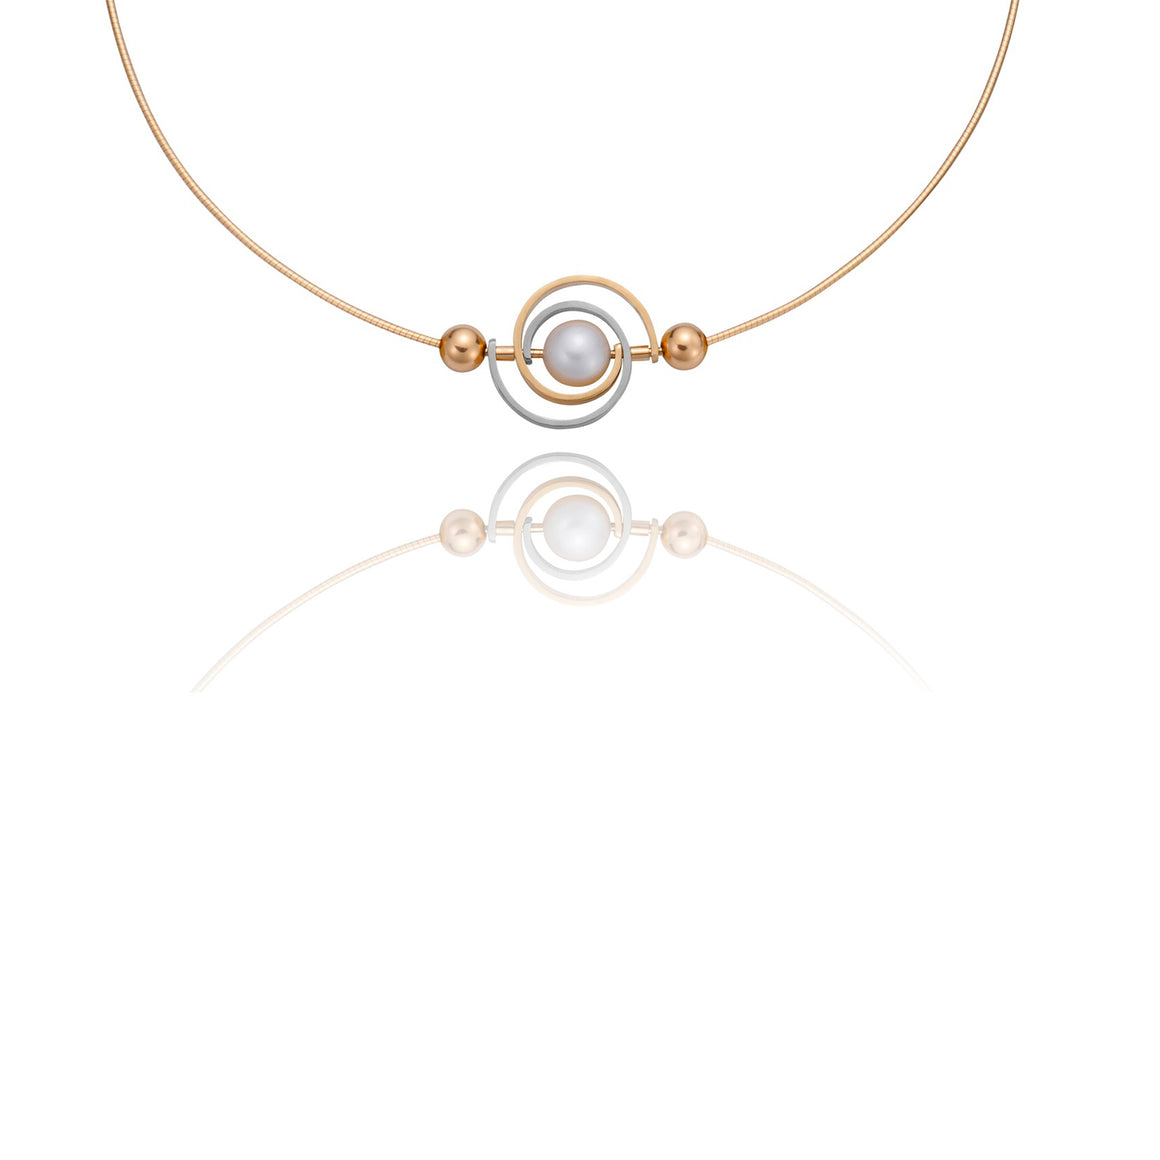 Single Spiral Orbit Necklace by Martha Seely - Talisman Collection Fine Jewelers